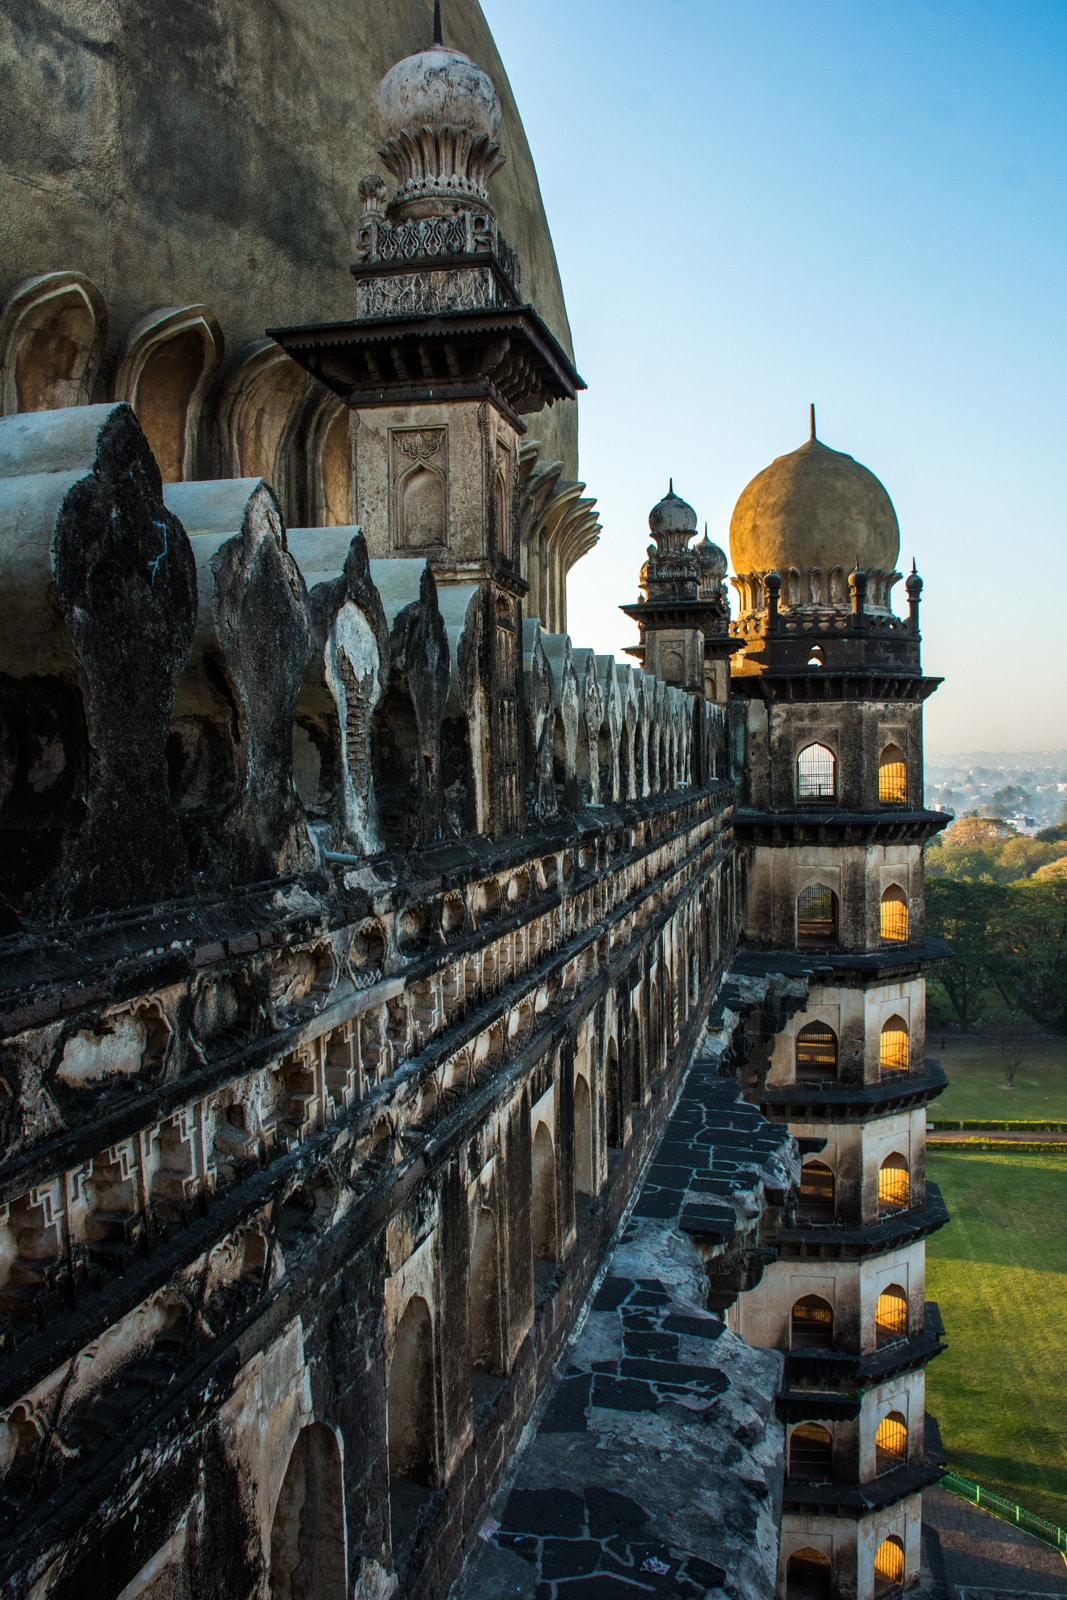 Sunrise over Gol Gumbaz in Bijapur, Karnataka is an off the beaten track highlight not to be missed!